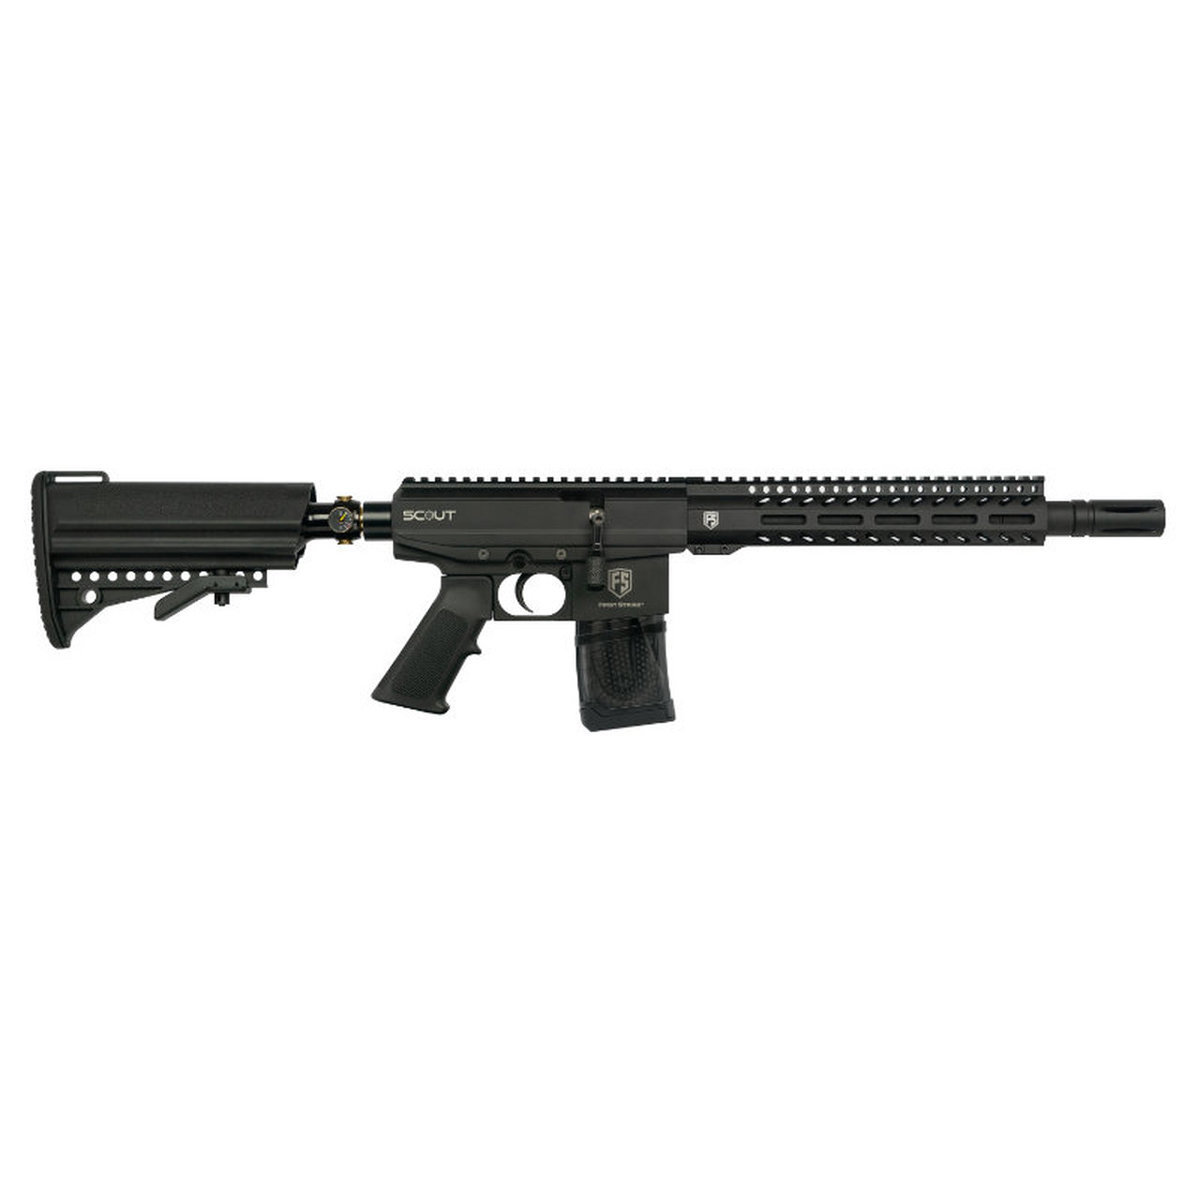 View larger image of First Strike T15 Scout Bolt Action Paintball Gun